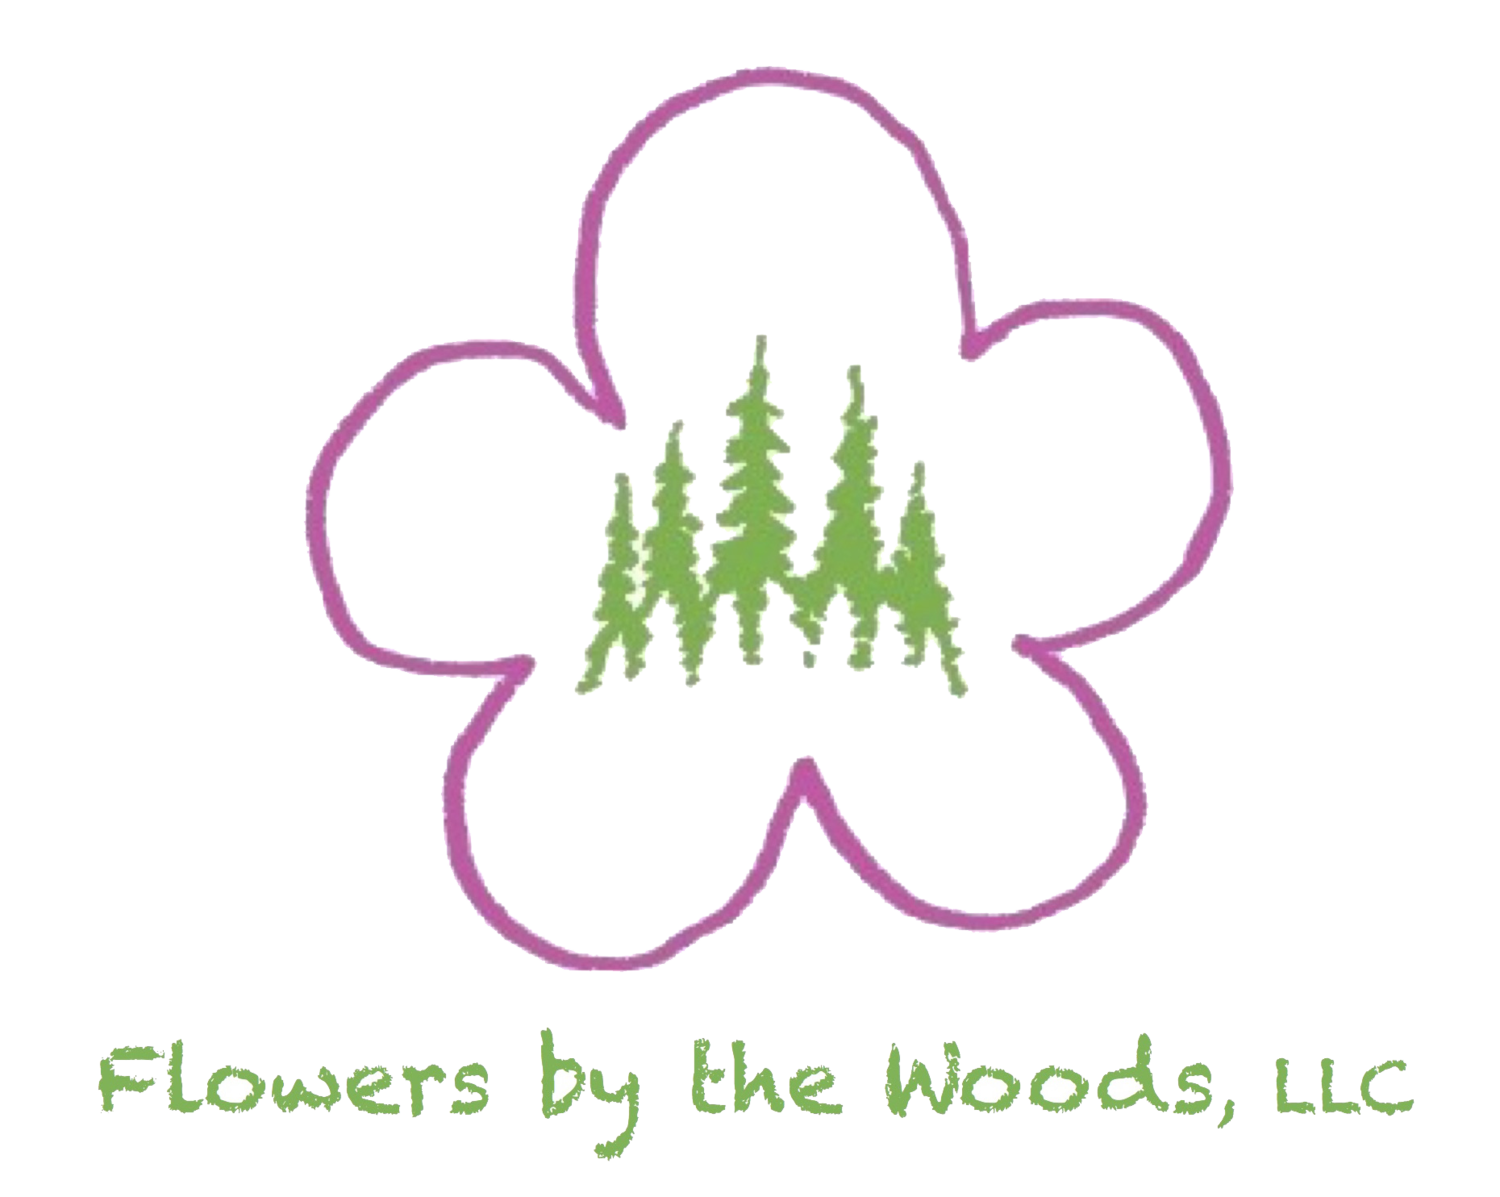 Flowers by the Woods, LLC